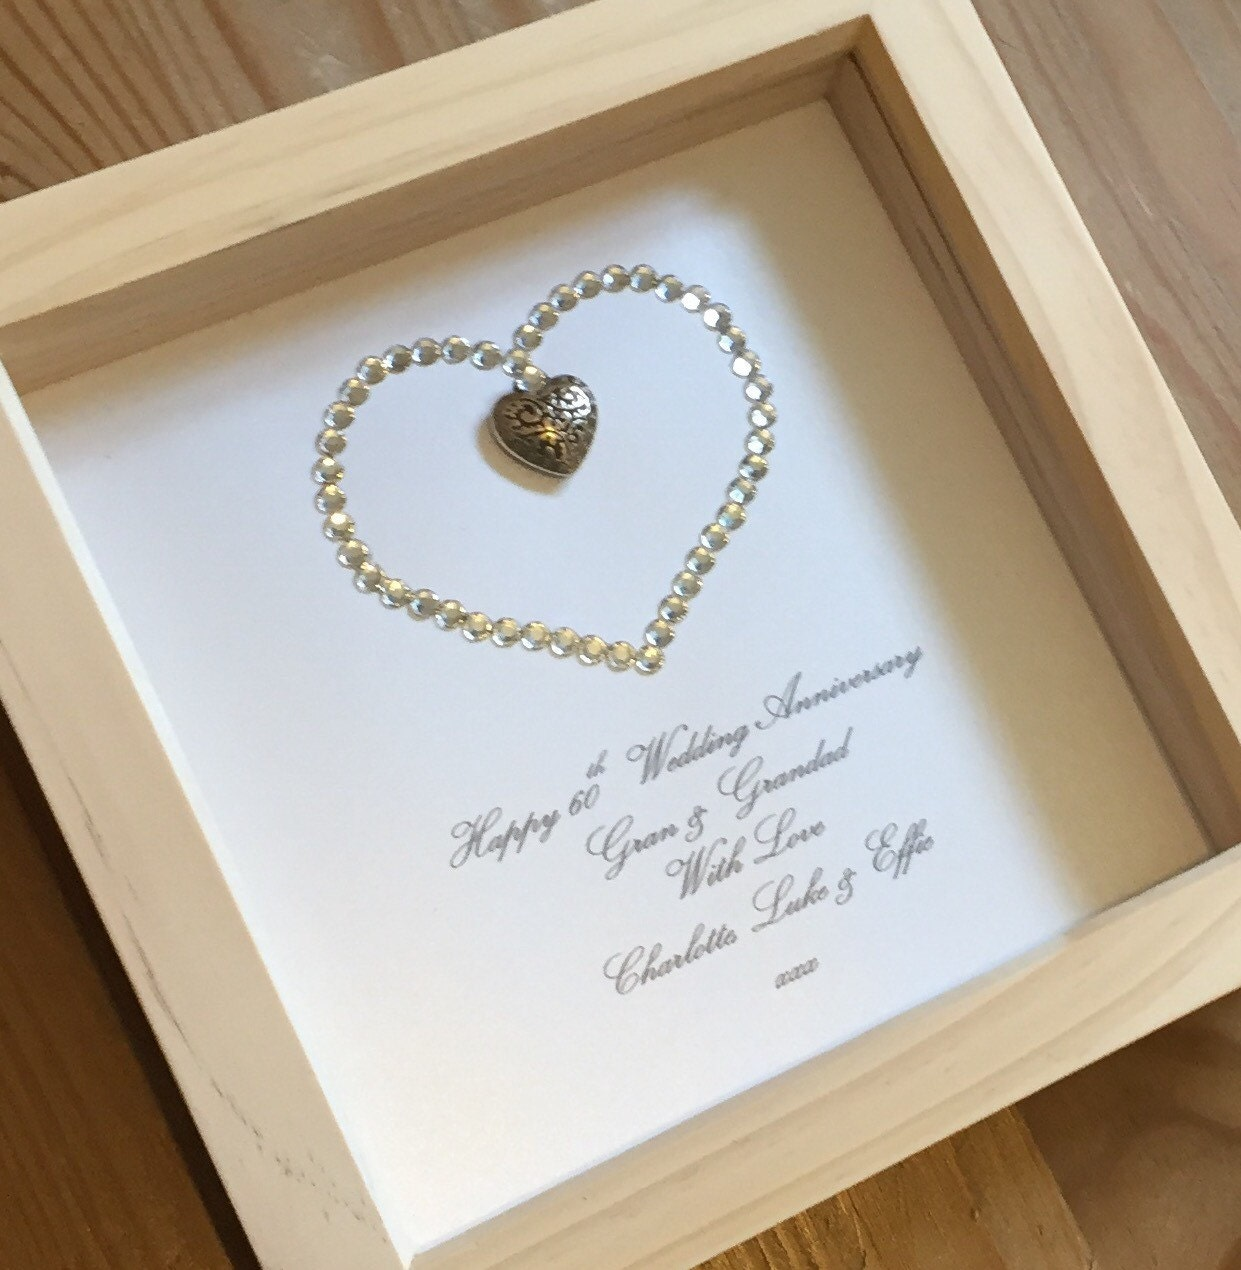 Gifts For 60th Wedding Anniversary: 15th Wedding Anniversary Gift 60th Wedding By